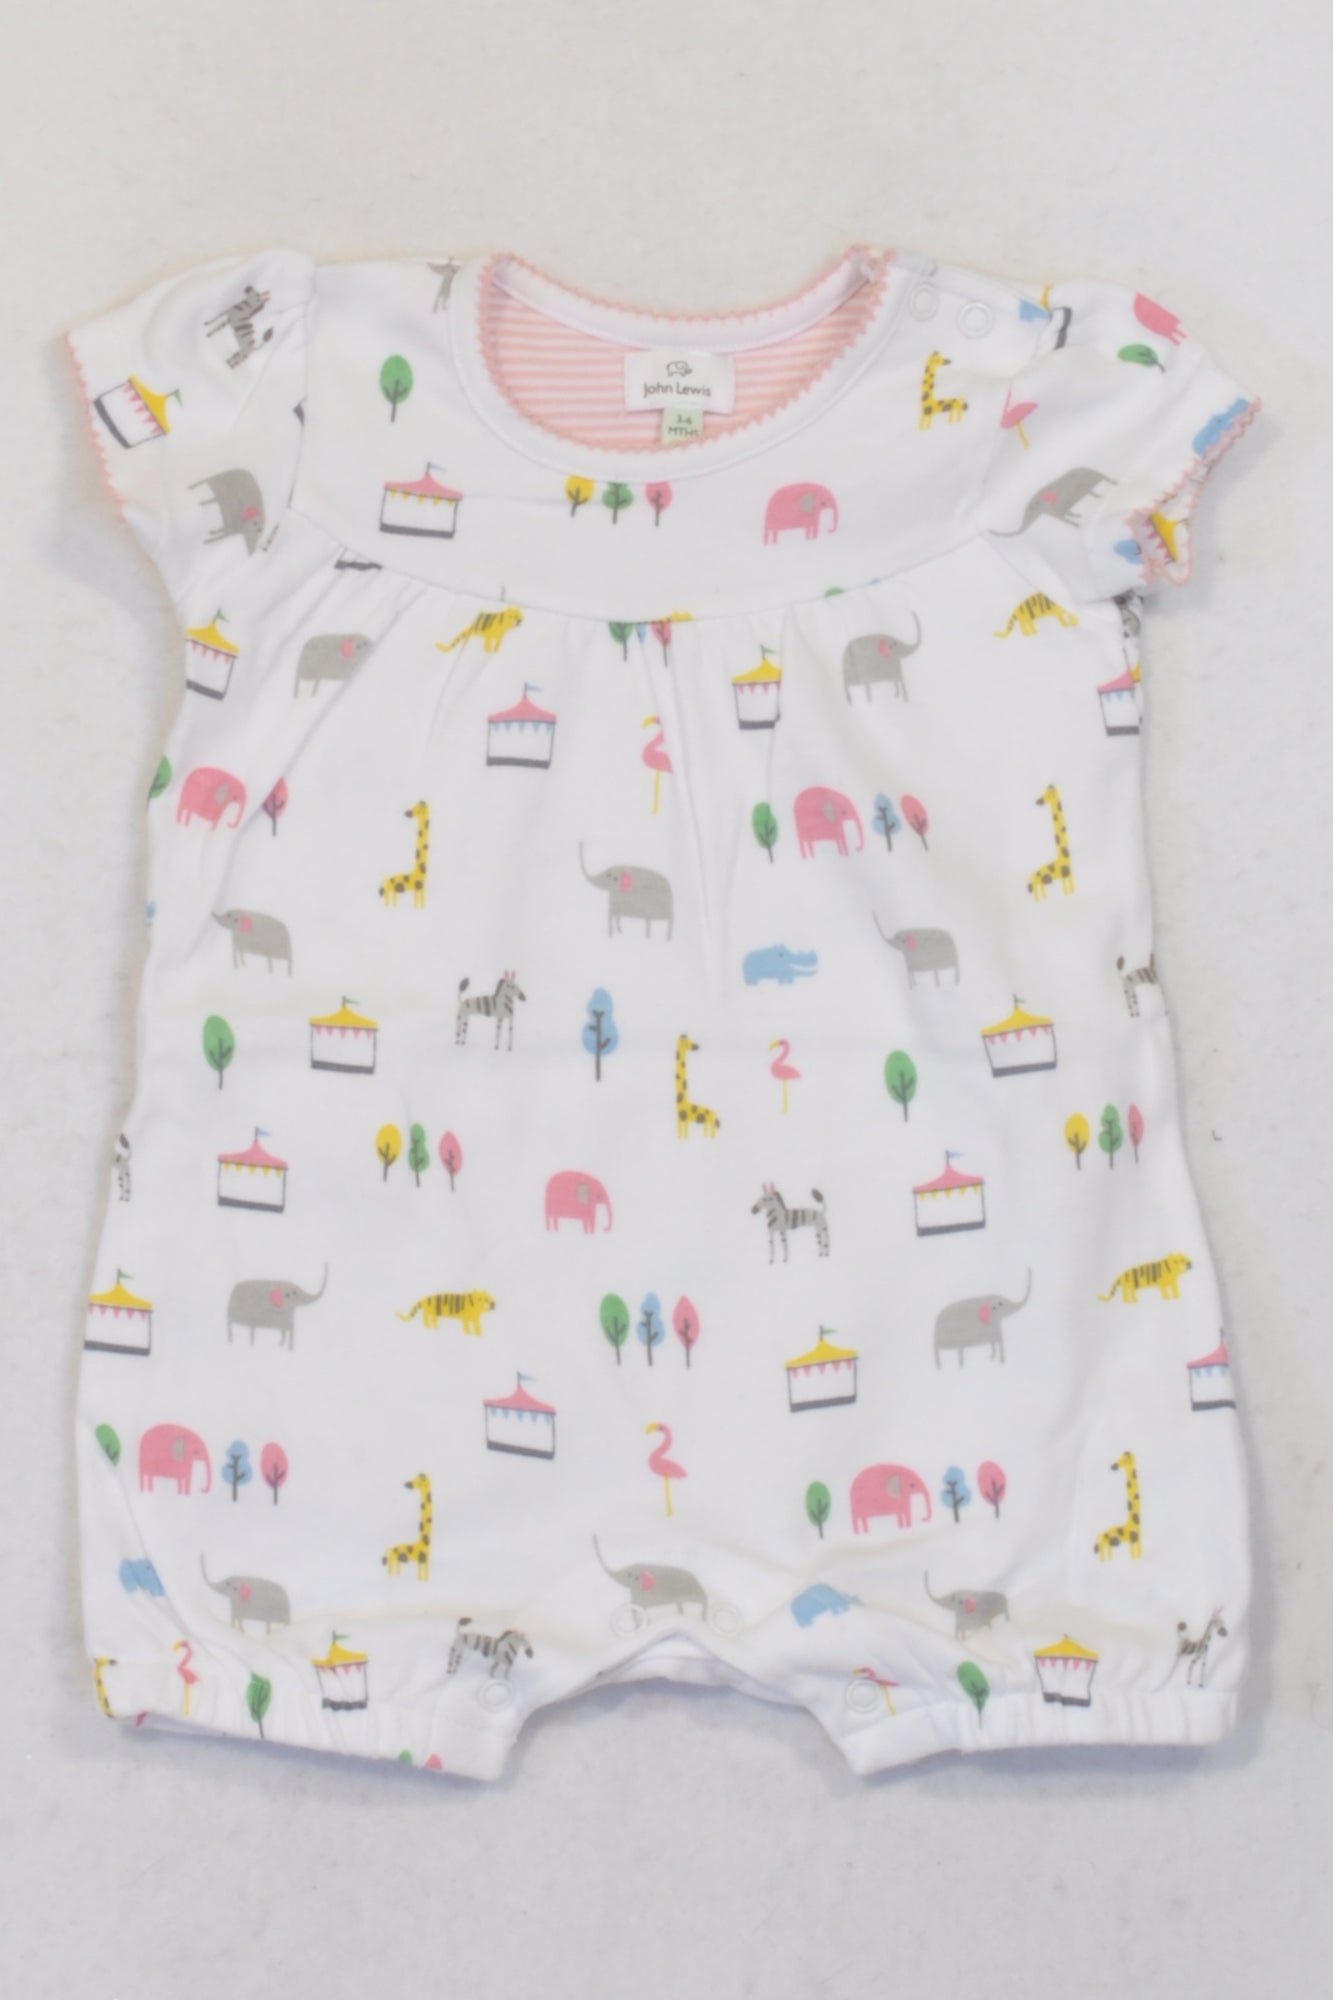 01952734ff99 John Lewis White Circus Romper Girls 3-6 months – Once More